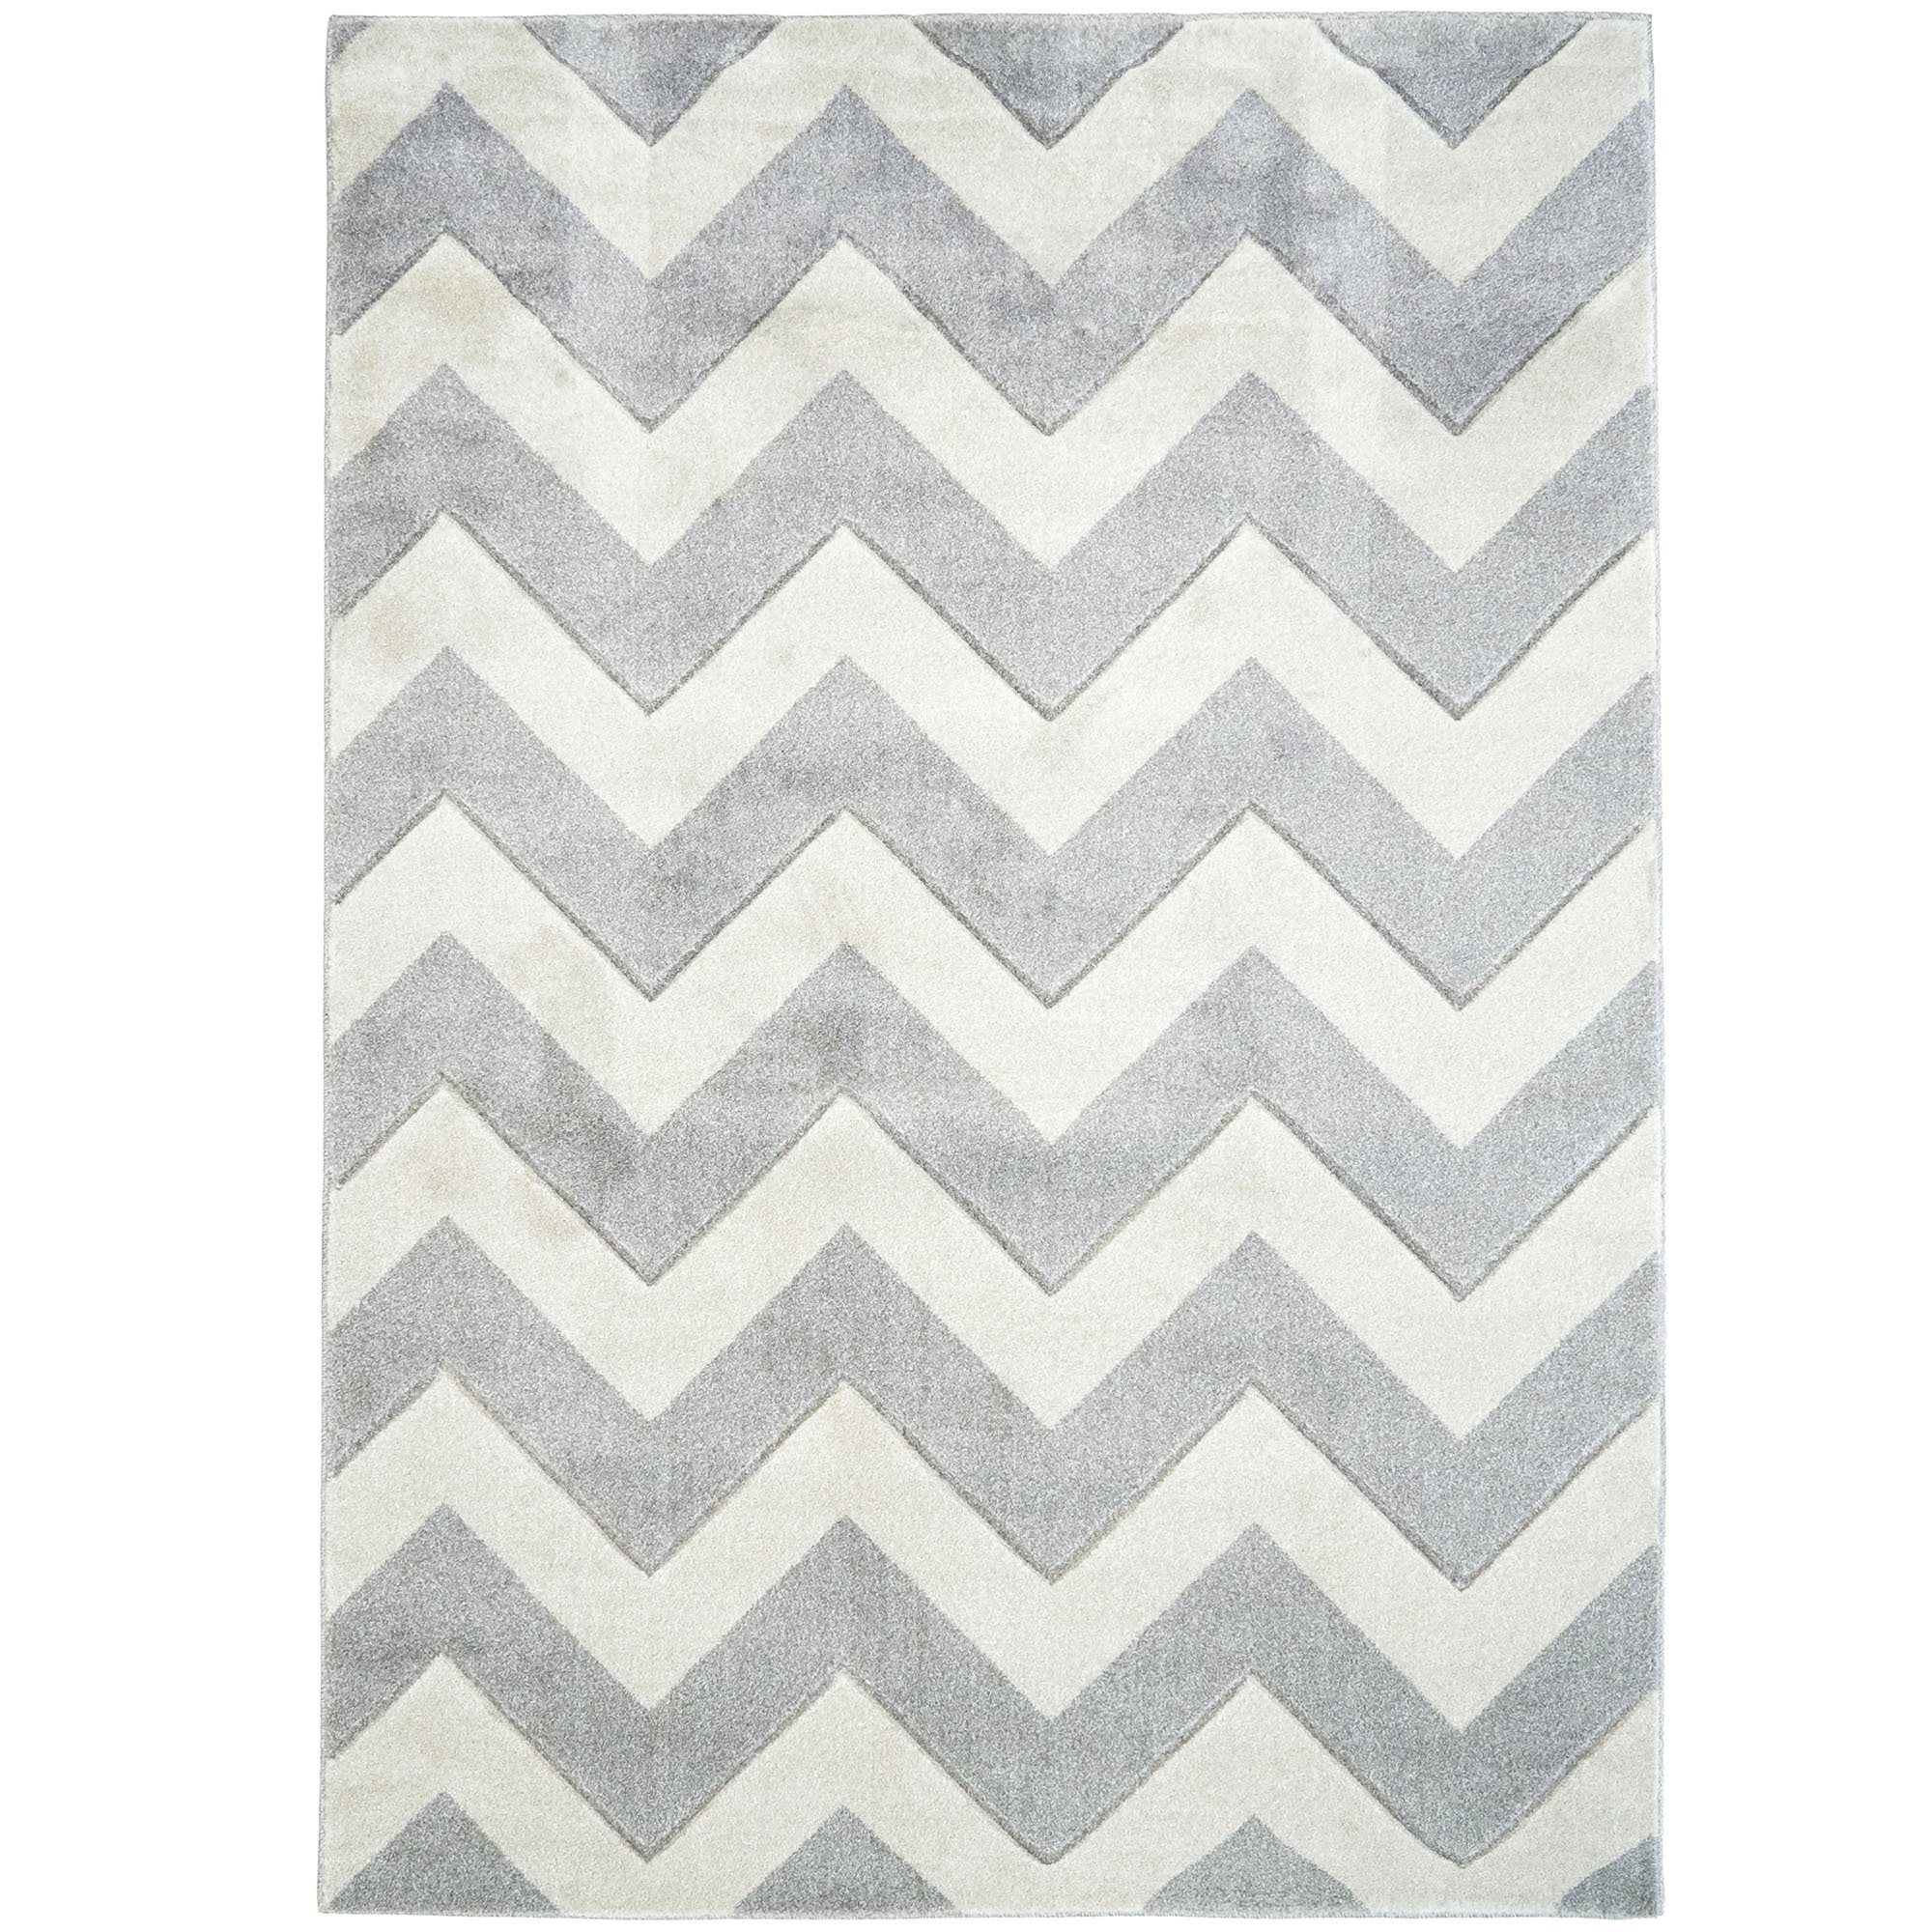 Picture of: Atlas Flooring Grey Off White Plaza Modern Chevron Rug Reviews Temple Webster